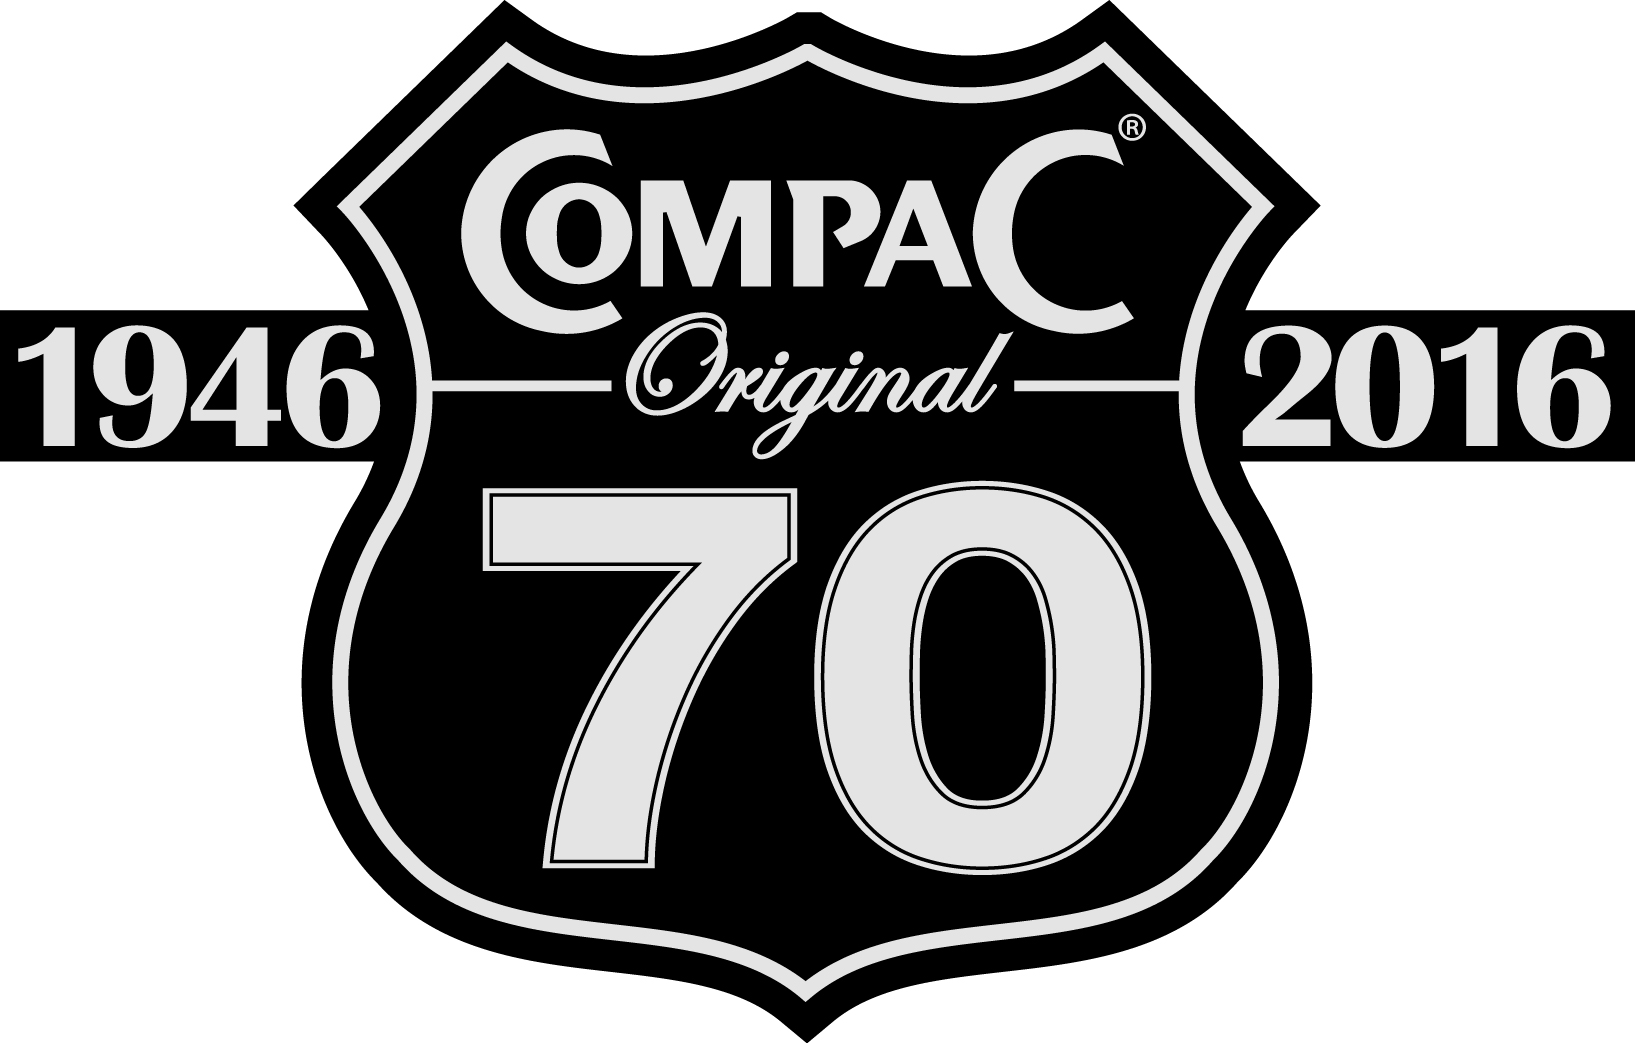 Compac 70 years logo black